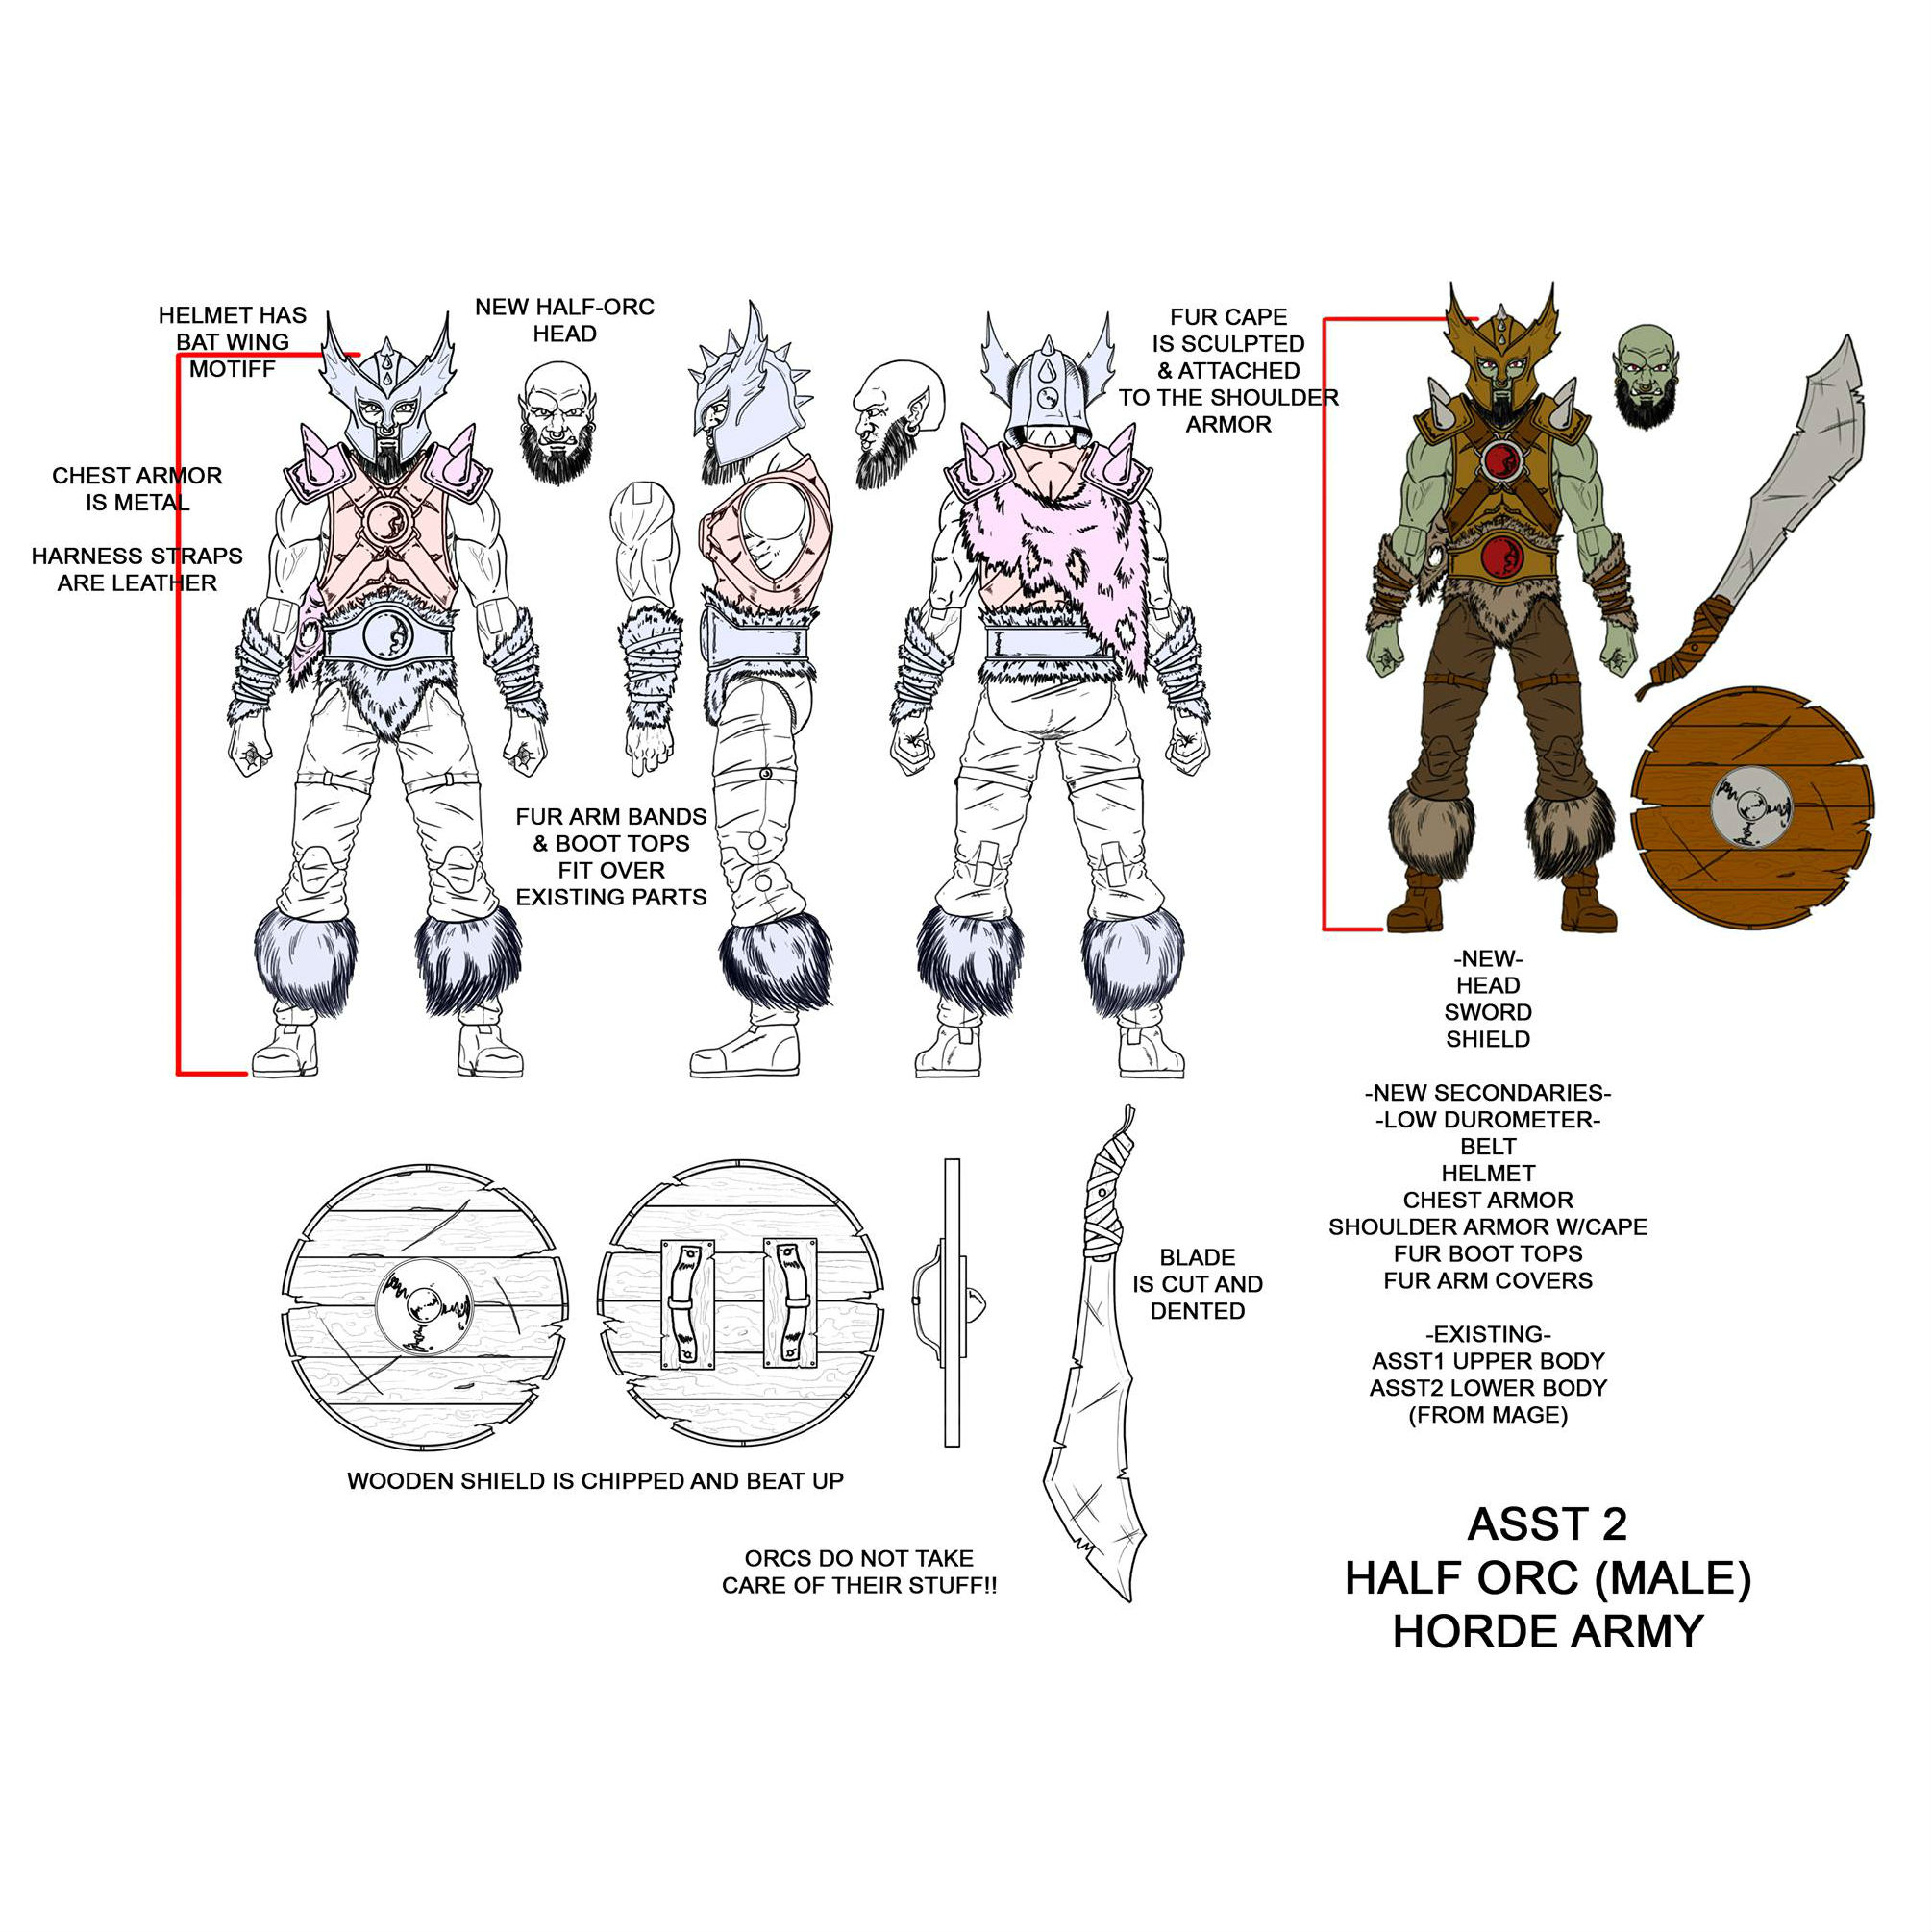 1:18 Action figure checklist vitruvian HACKS Orc Warrior